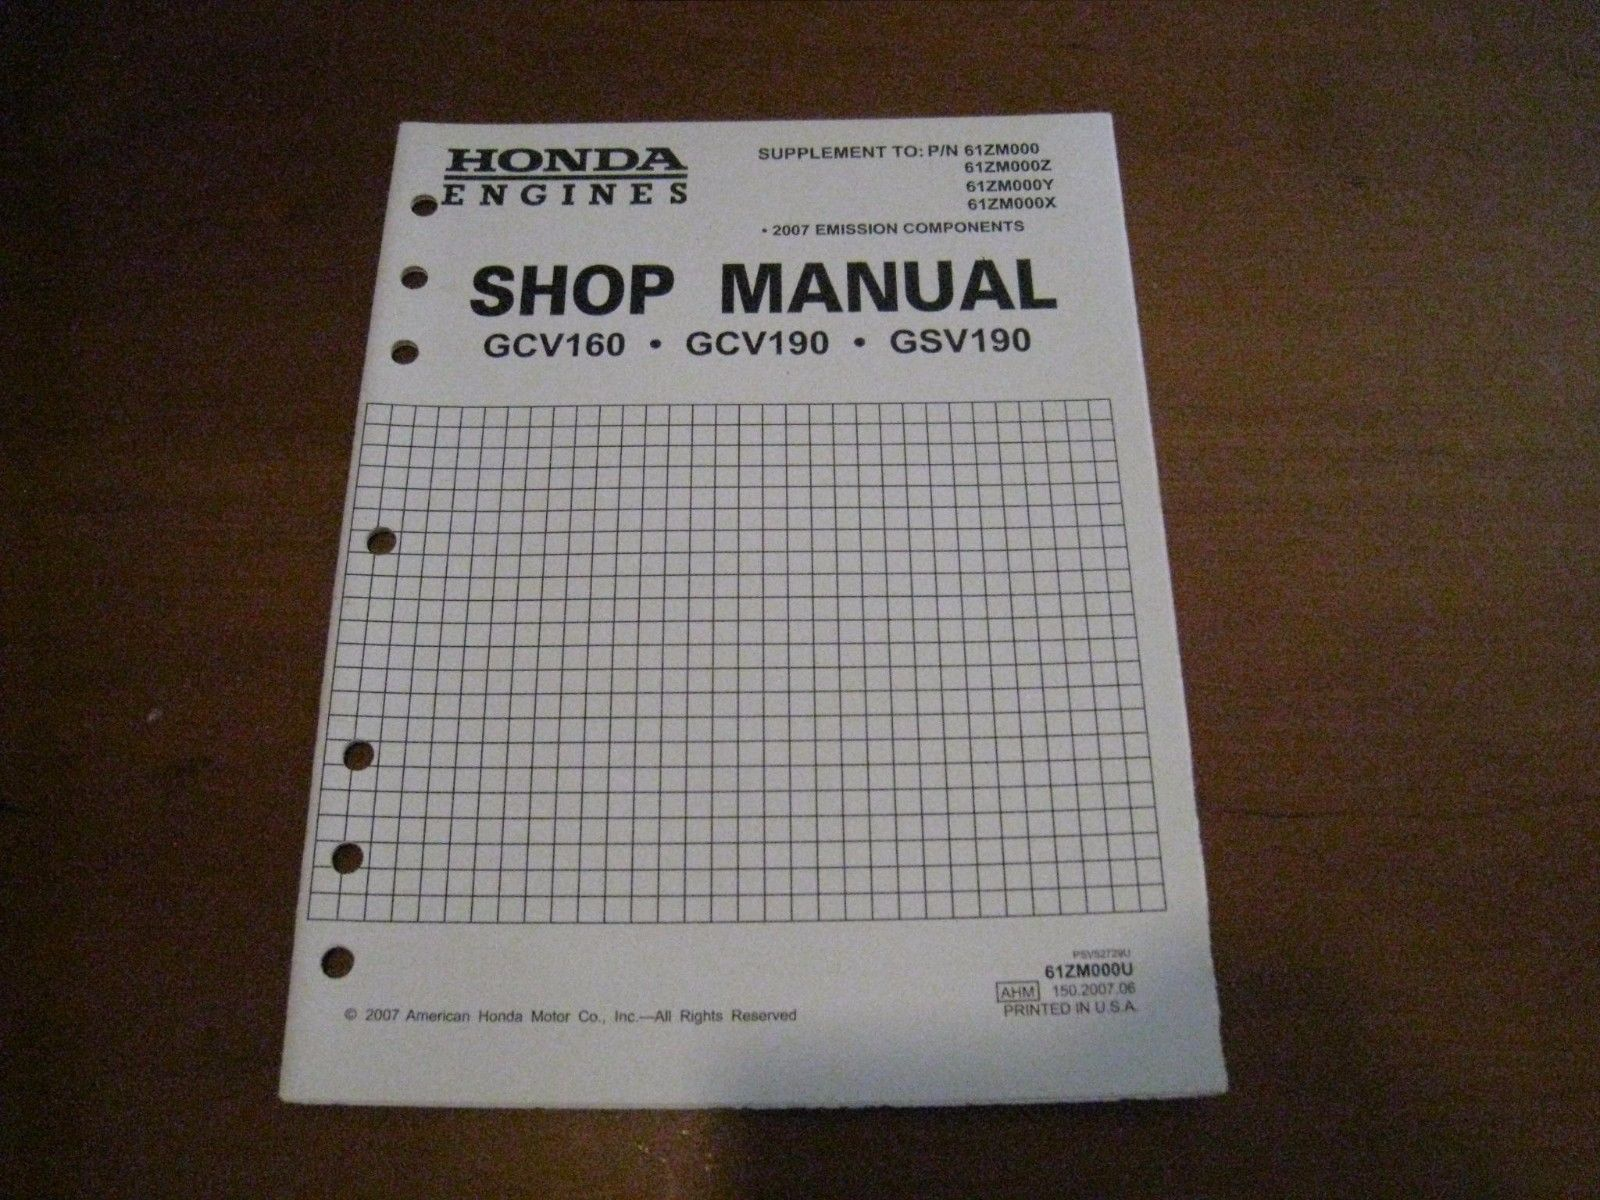 Honda Engines OEM Shop Manual GCV160 GCV190 and similar items. 57